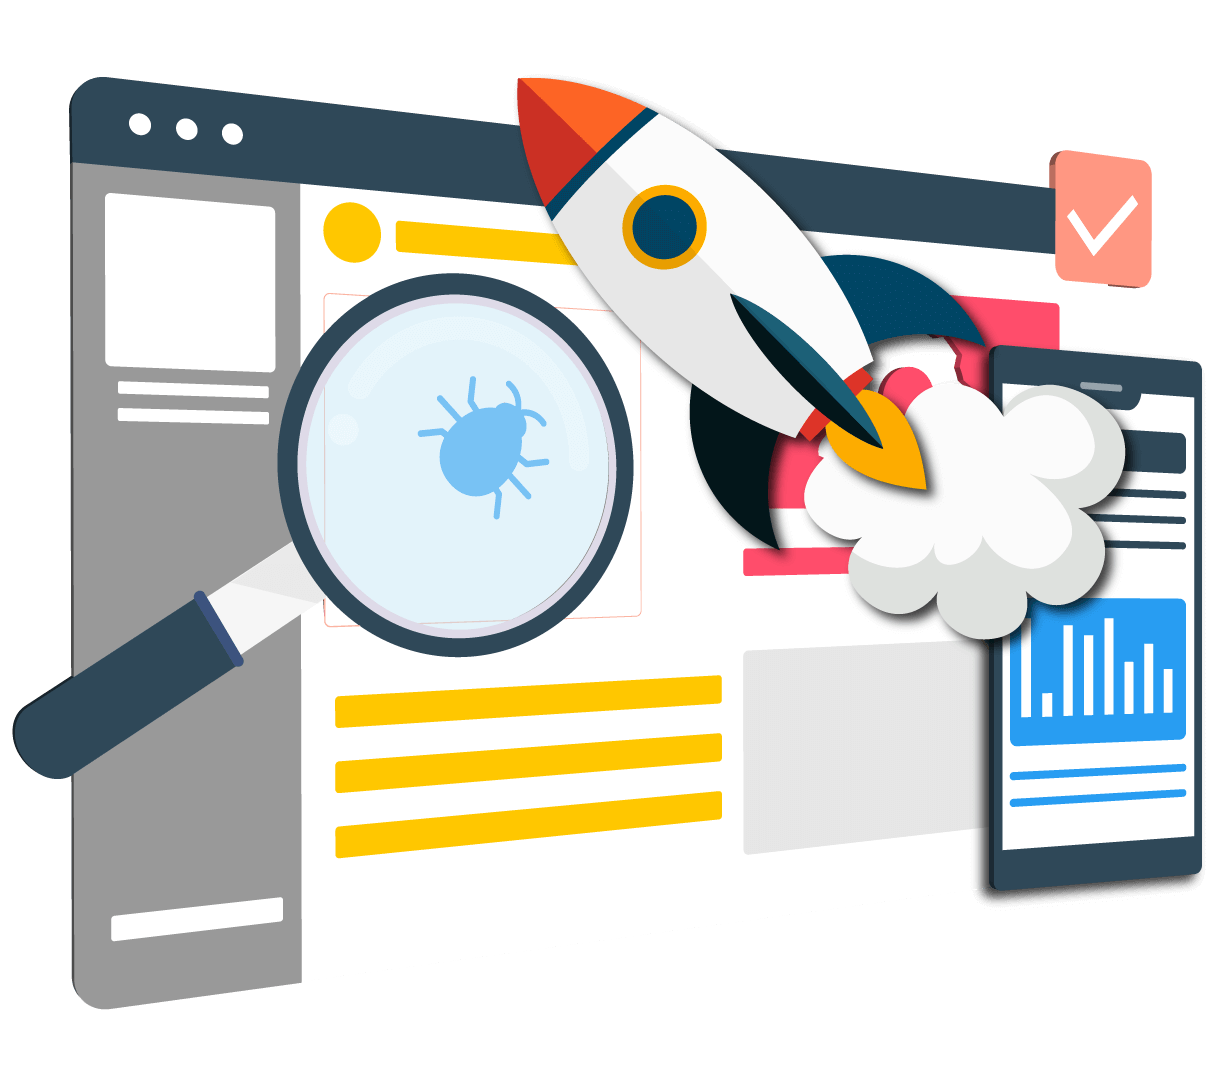 deploy, publish websites, web applications, code deployment, SDLC, software quality assurance services, software testing services company, security testing services, web application testing services